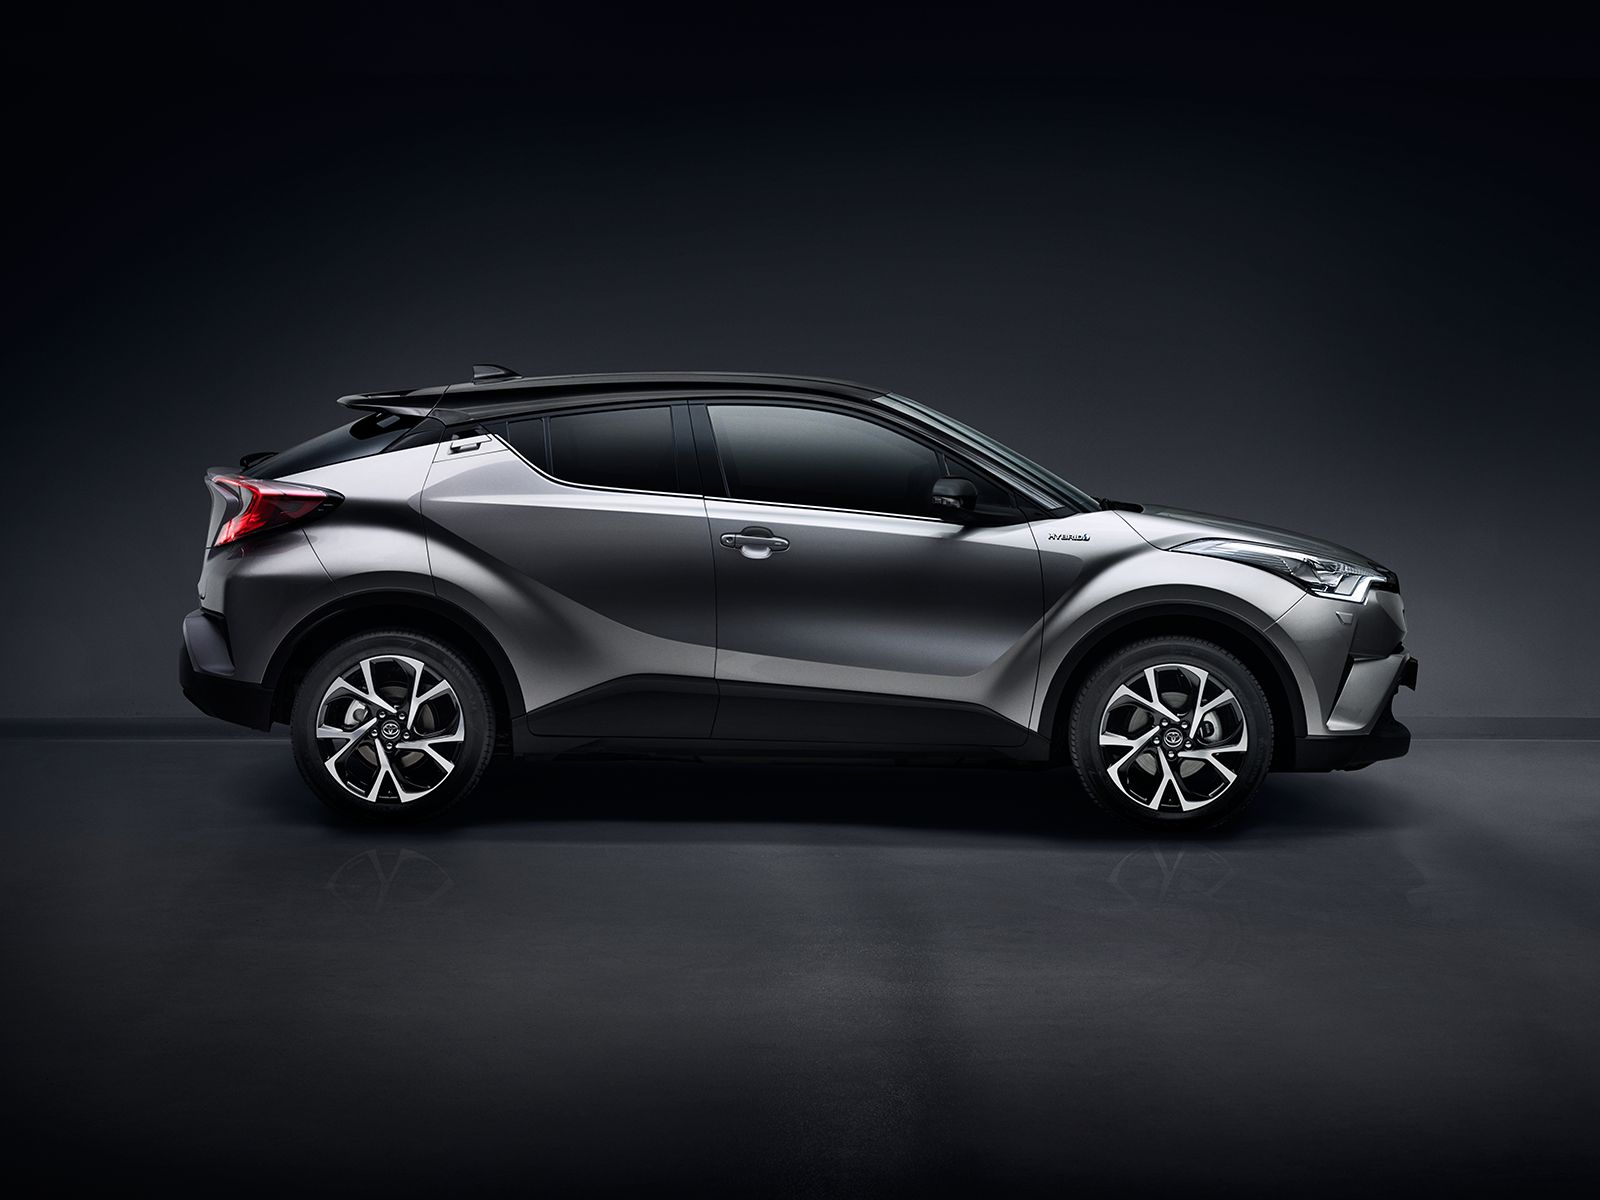 New toyota c hr coupe high rider hybrid crossover c hr pinterest hybrid crossover toyota and coupe